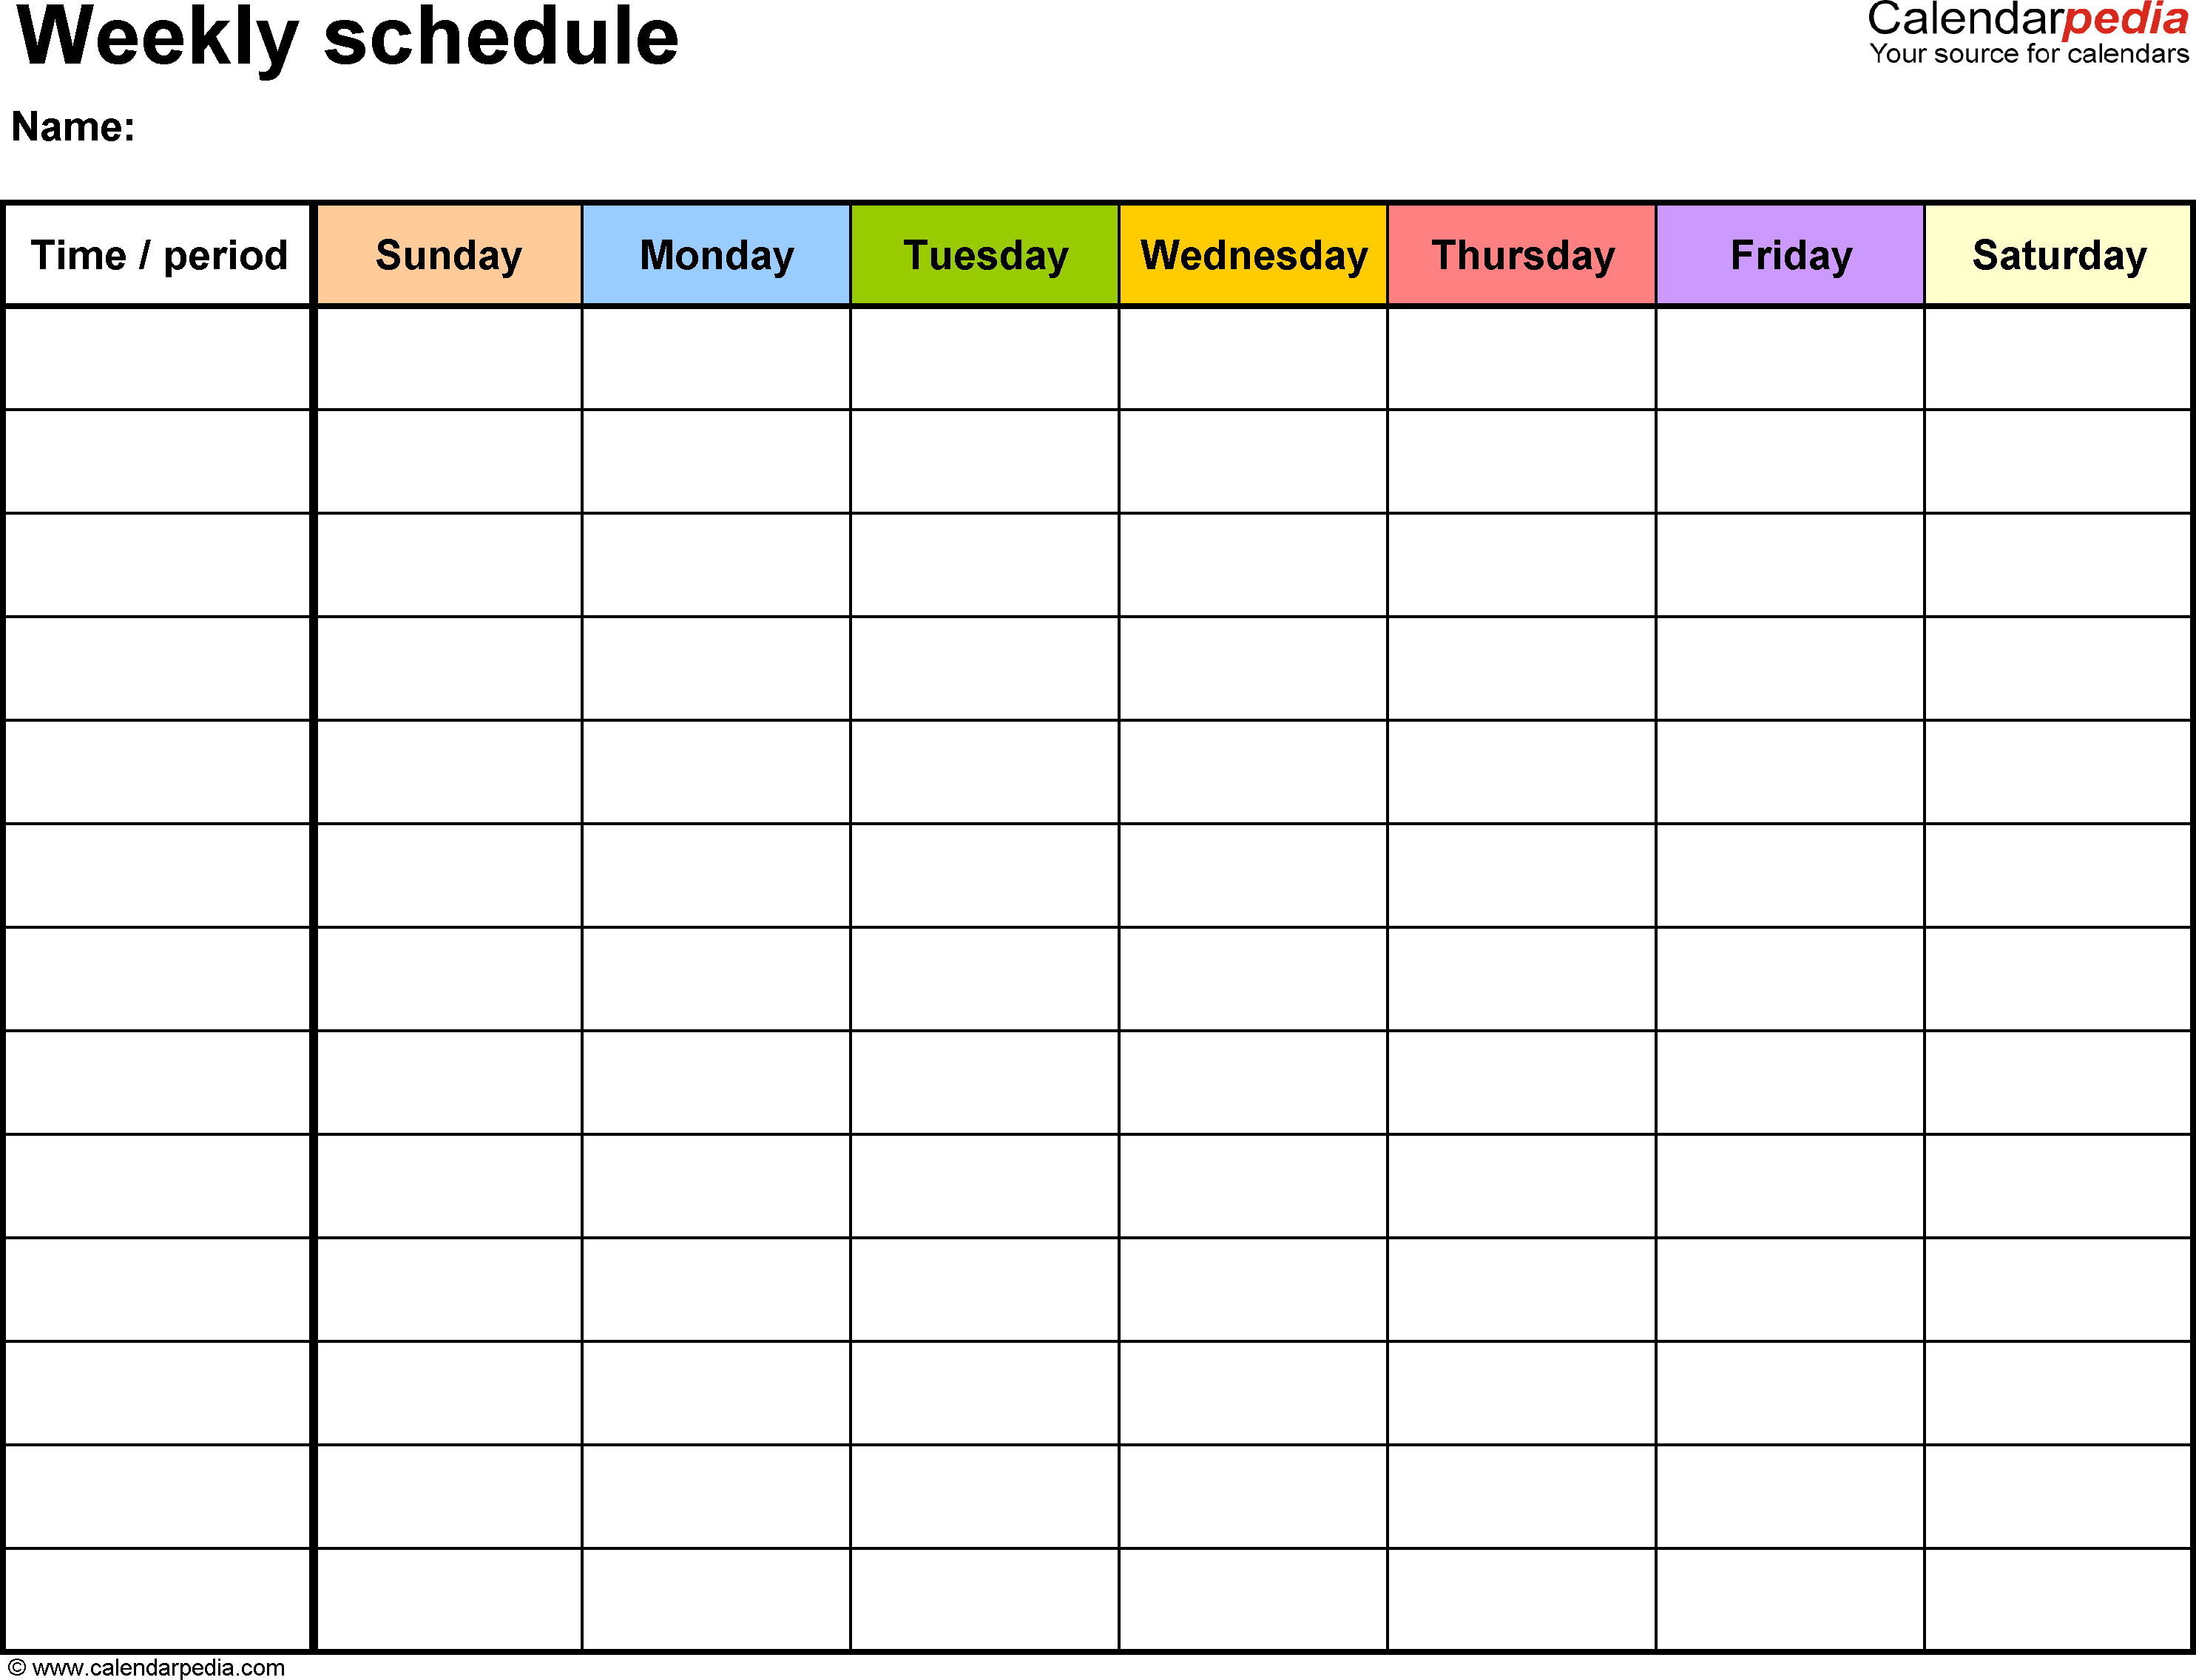 Free Weekly Schedule Templates For Excel - 18 Templates throughout Free 7 Day Work Schedule Template Pdf